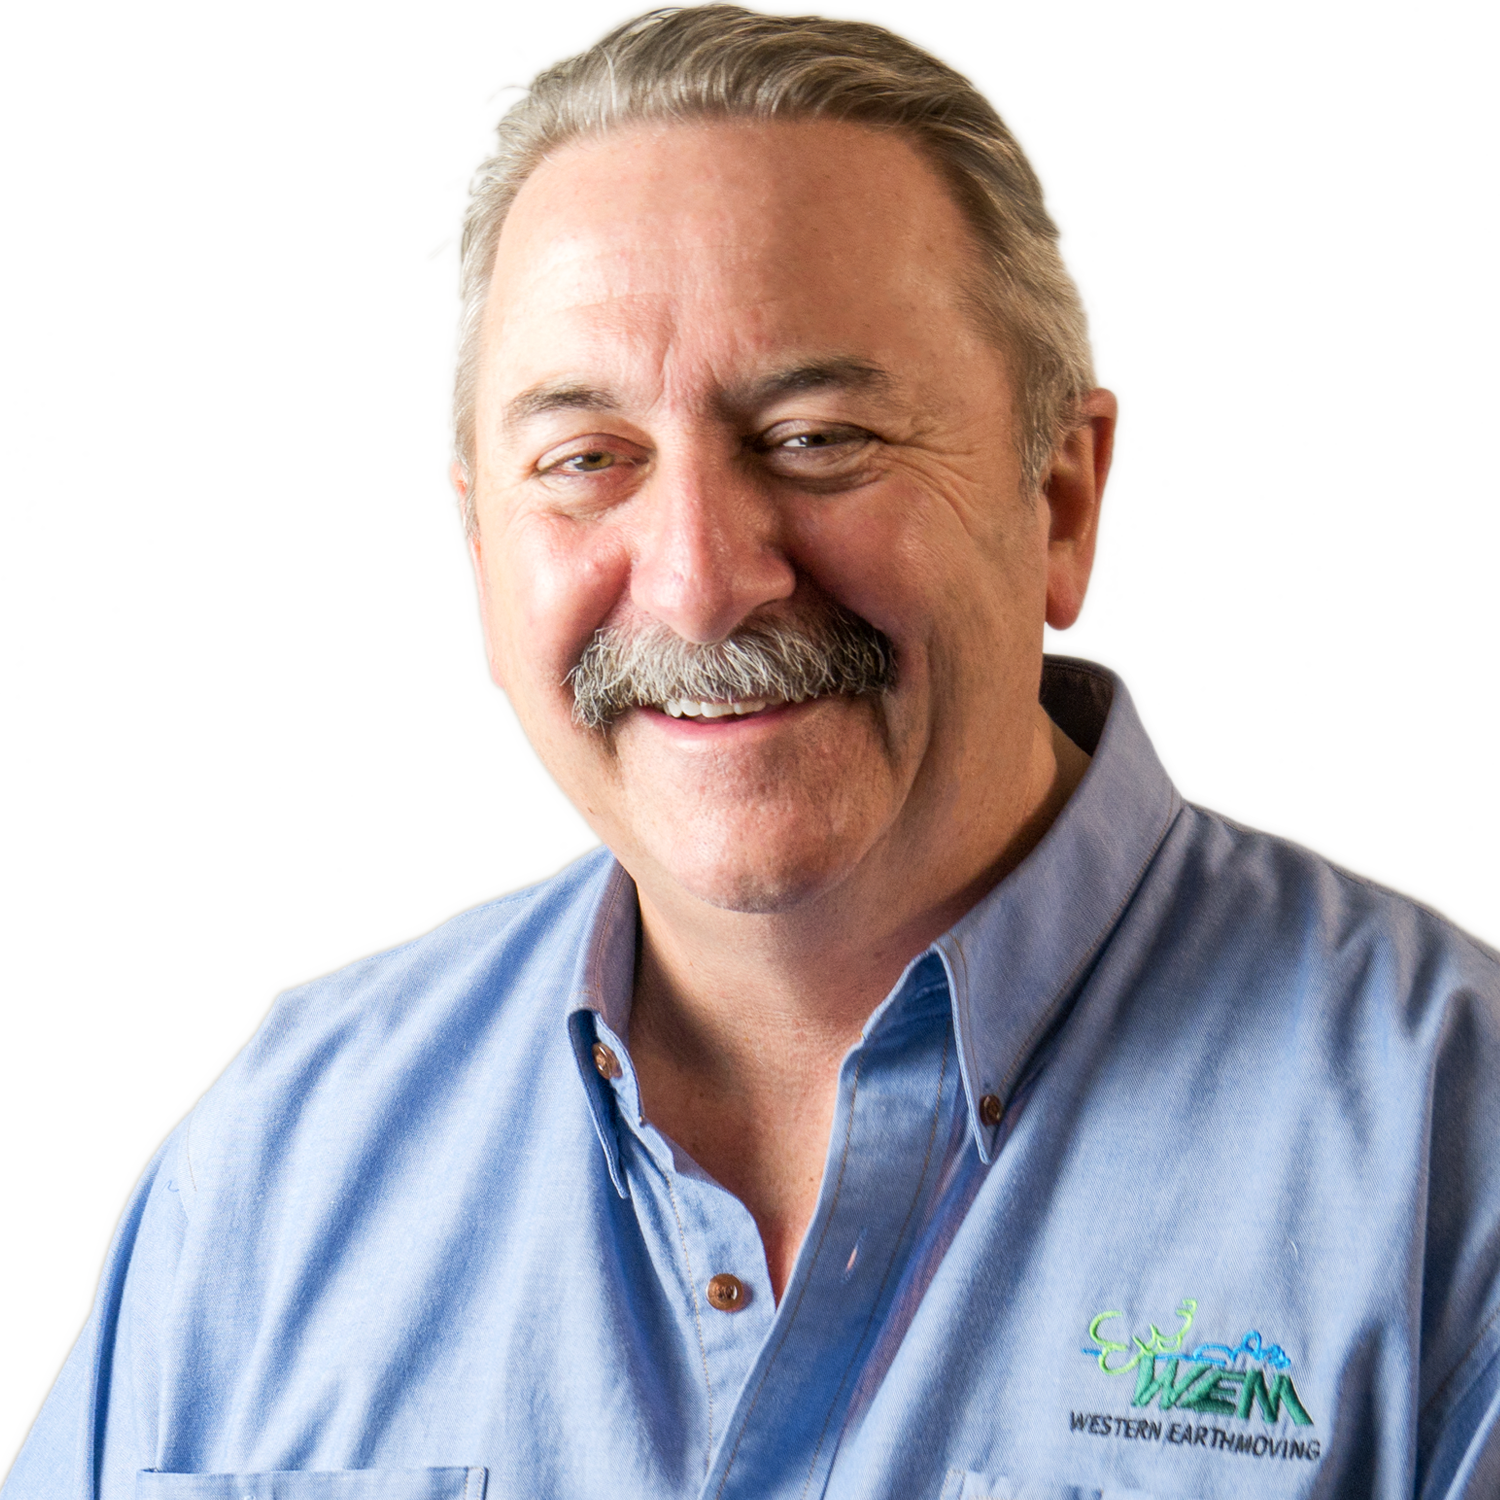 GRAHAM RAGG - MANAGING DIRECTORGraham has enjoyed a passion for earthmoving from an early age. As MD he is involved across all parts of the company's activities and is focussed on timely, safe and effective construction.Graham ensures that we deliver as promised.